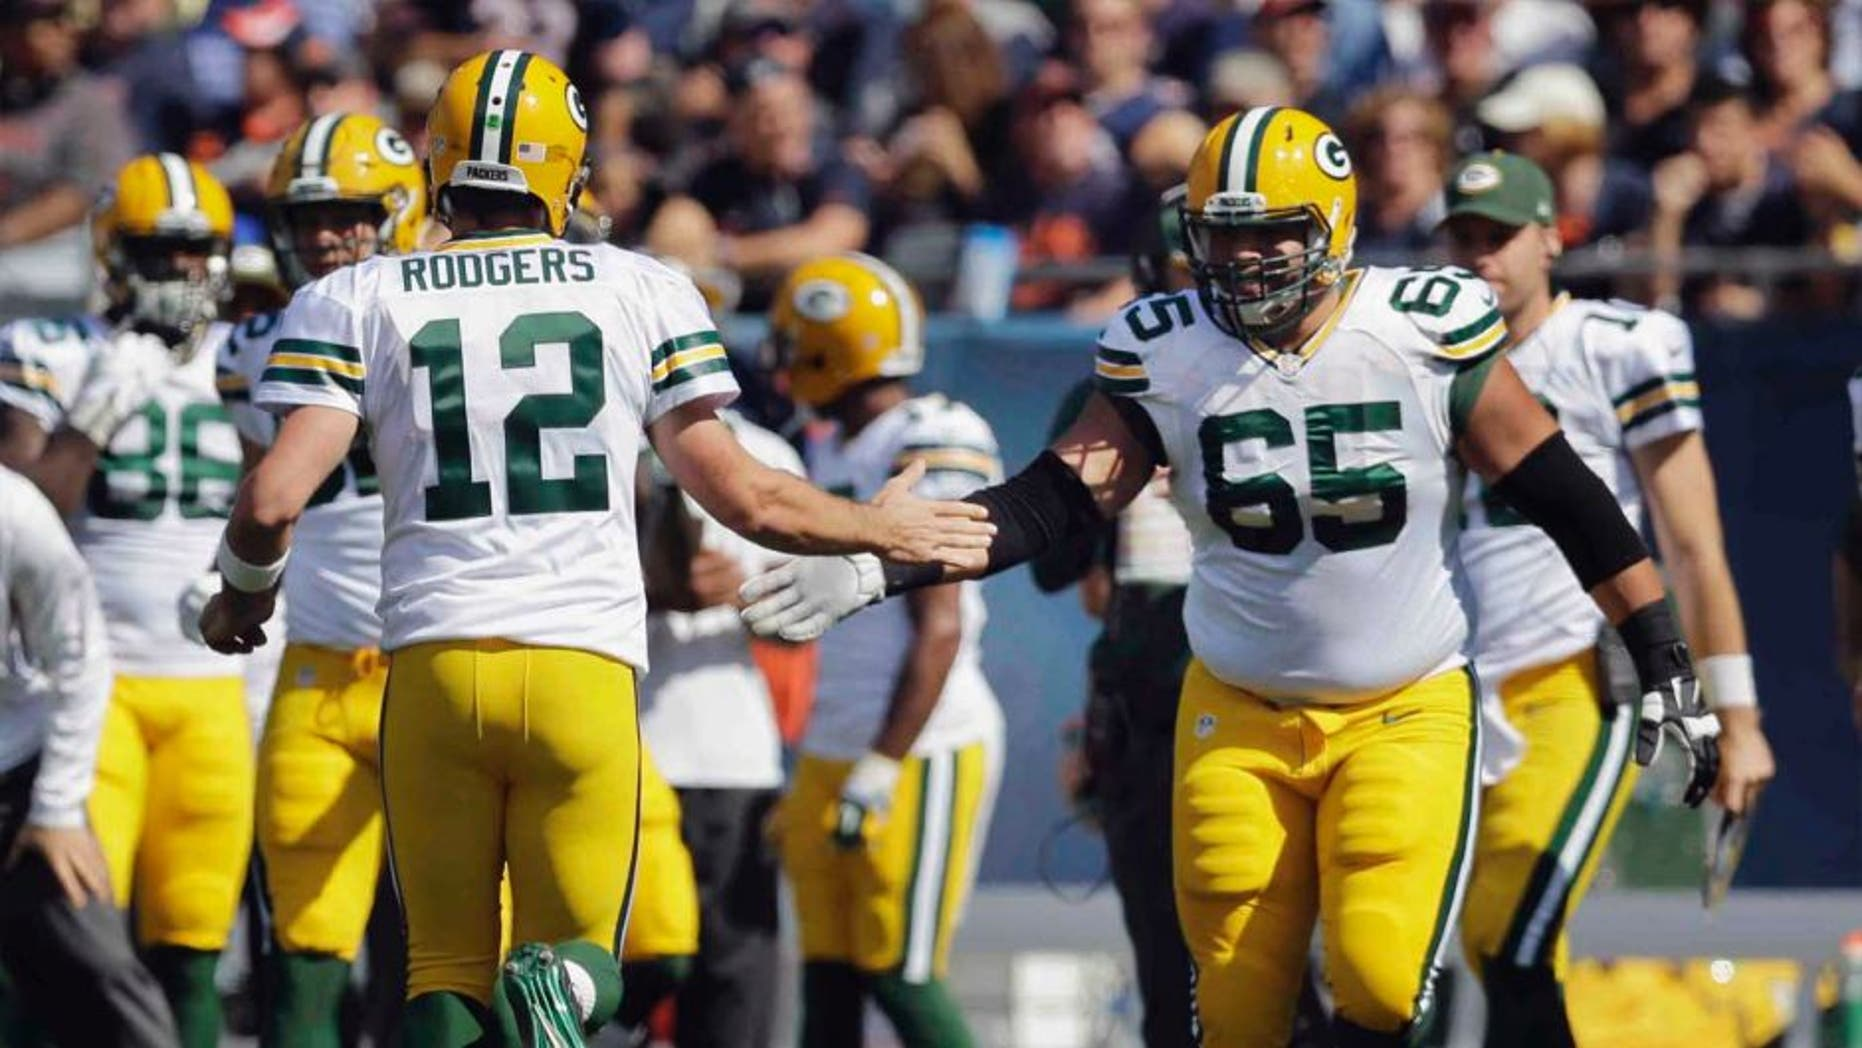 Green Bay Packers quarterback Aaron Rodgers (left) celebrates with guard Lane Taylor after throwing a touchdown pass in the first half.